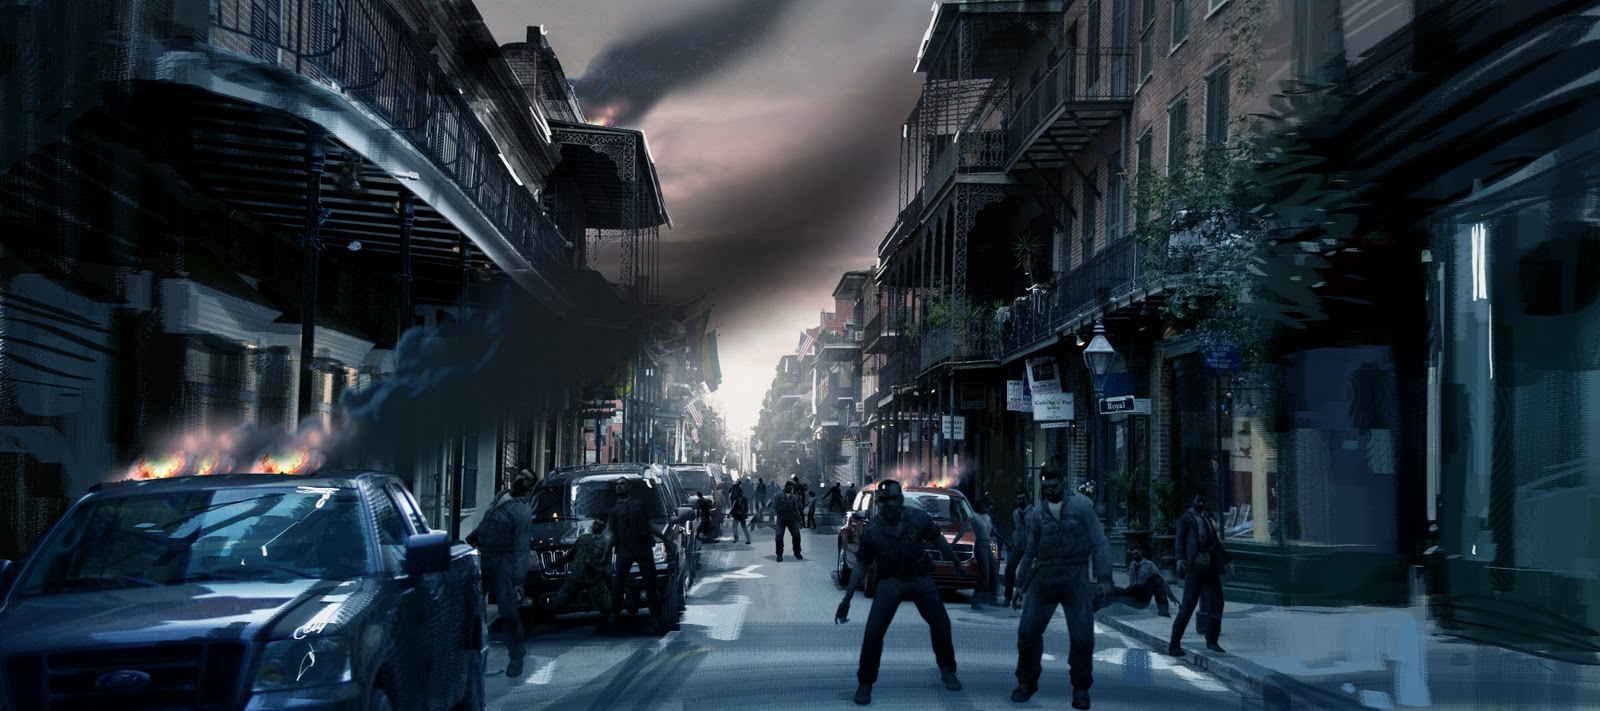 left-4-dead-2-wallpaper-street-concept-a